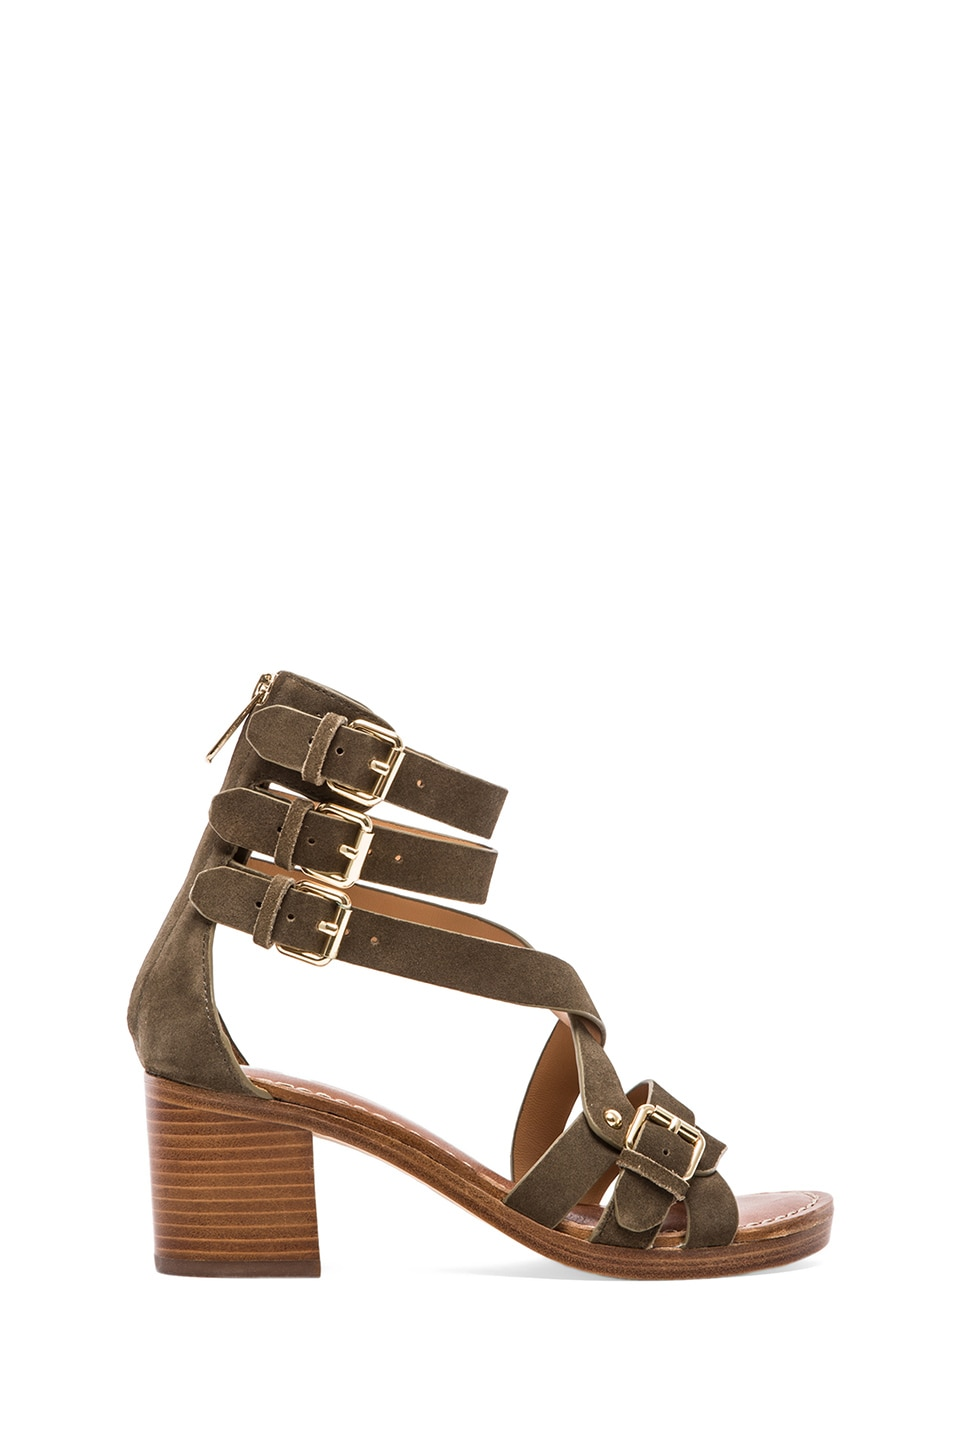 Belle by Sigerson Morrison Abra Sandals in Silice